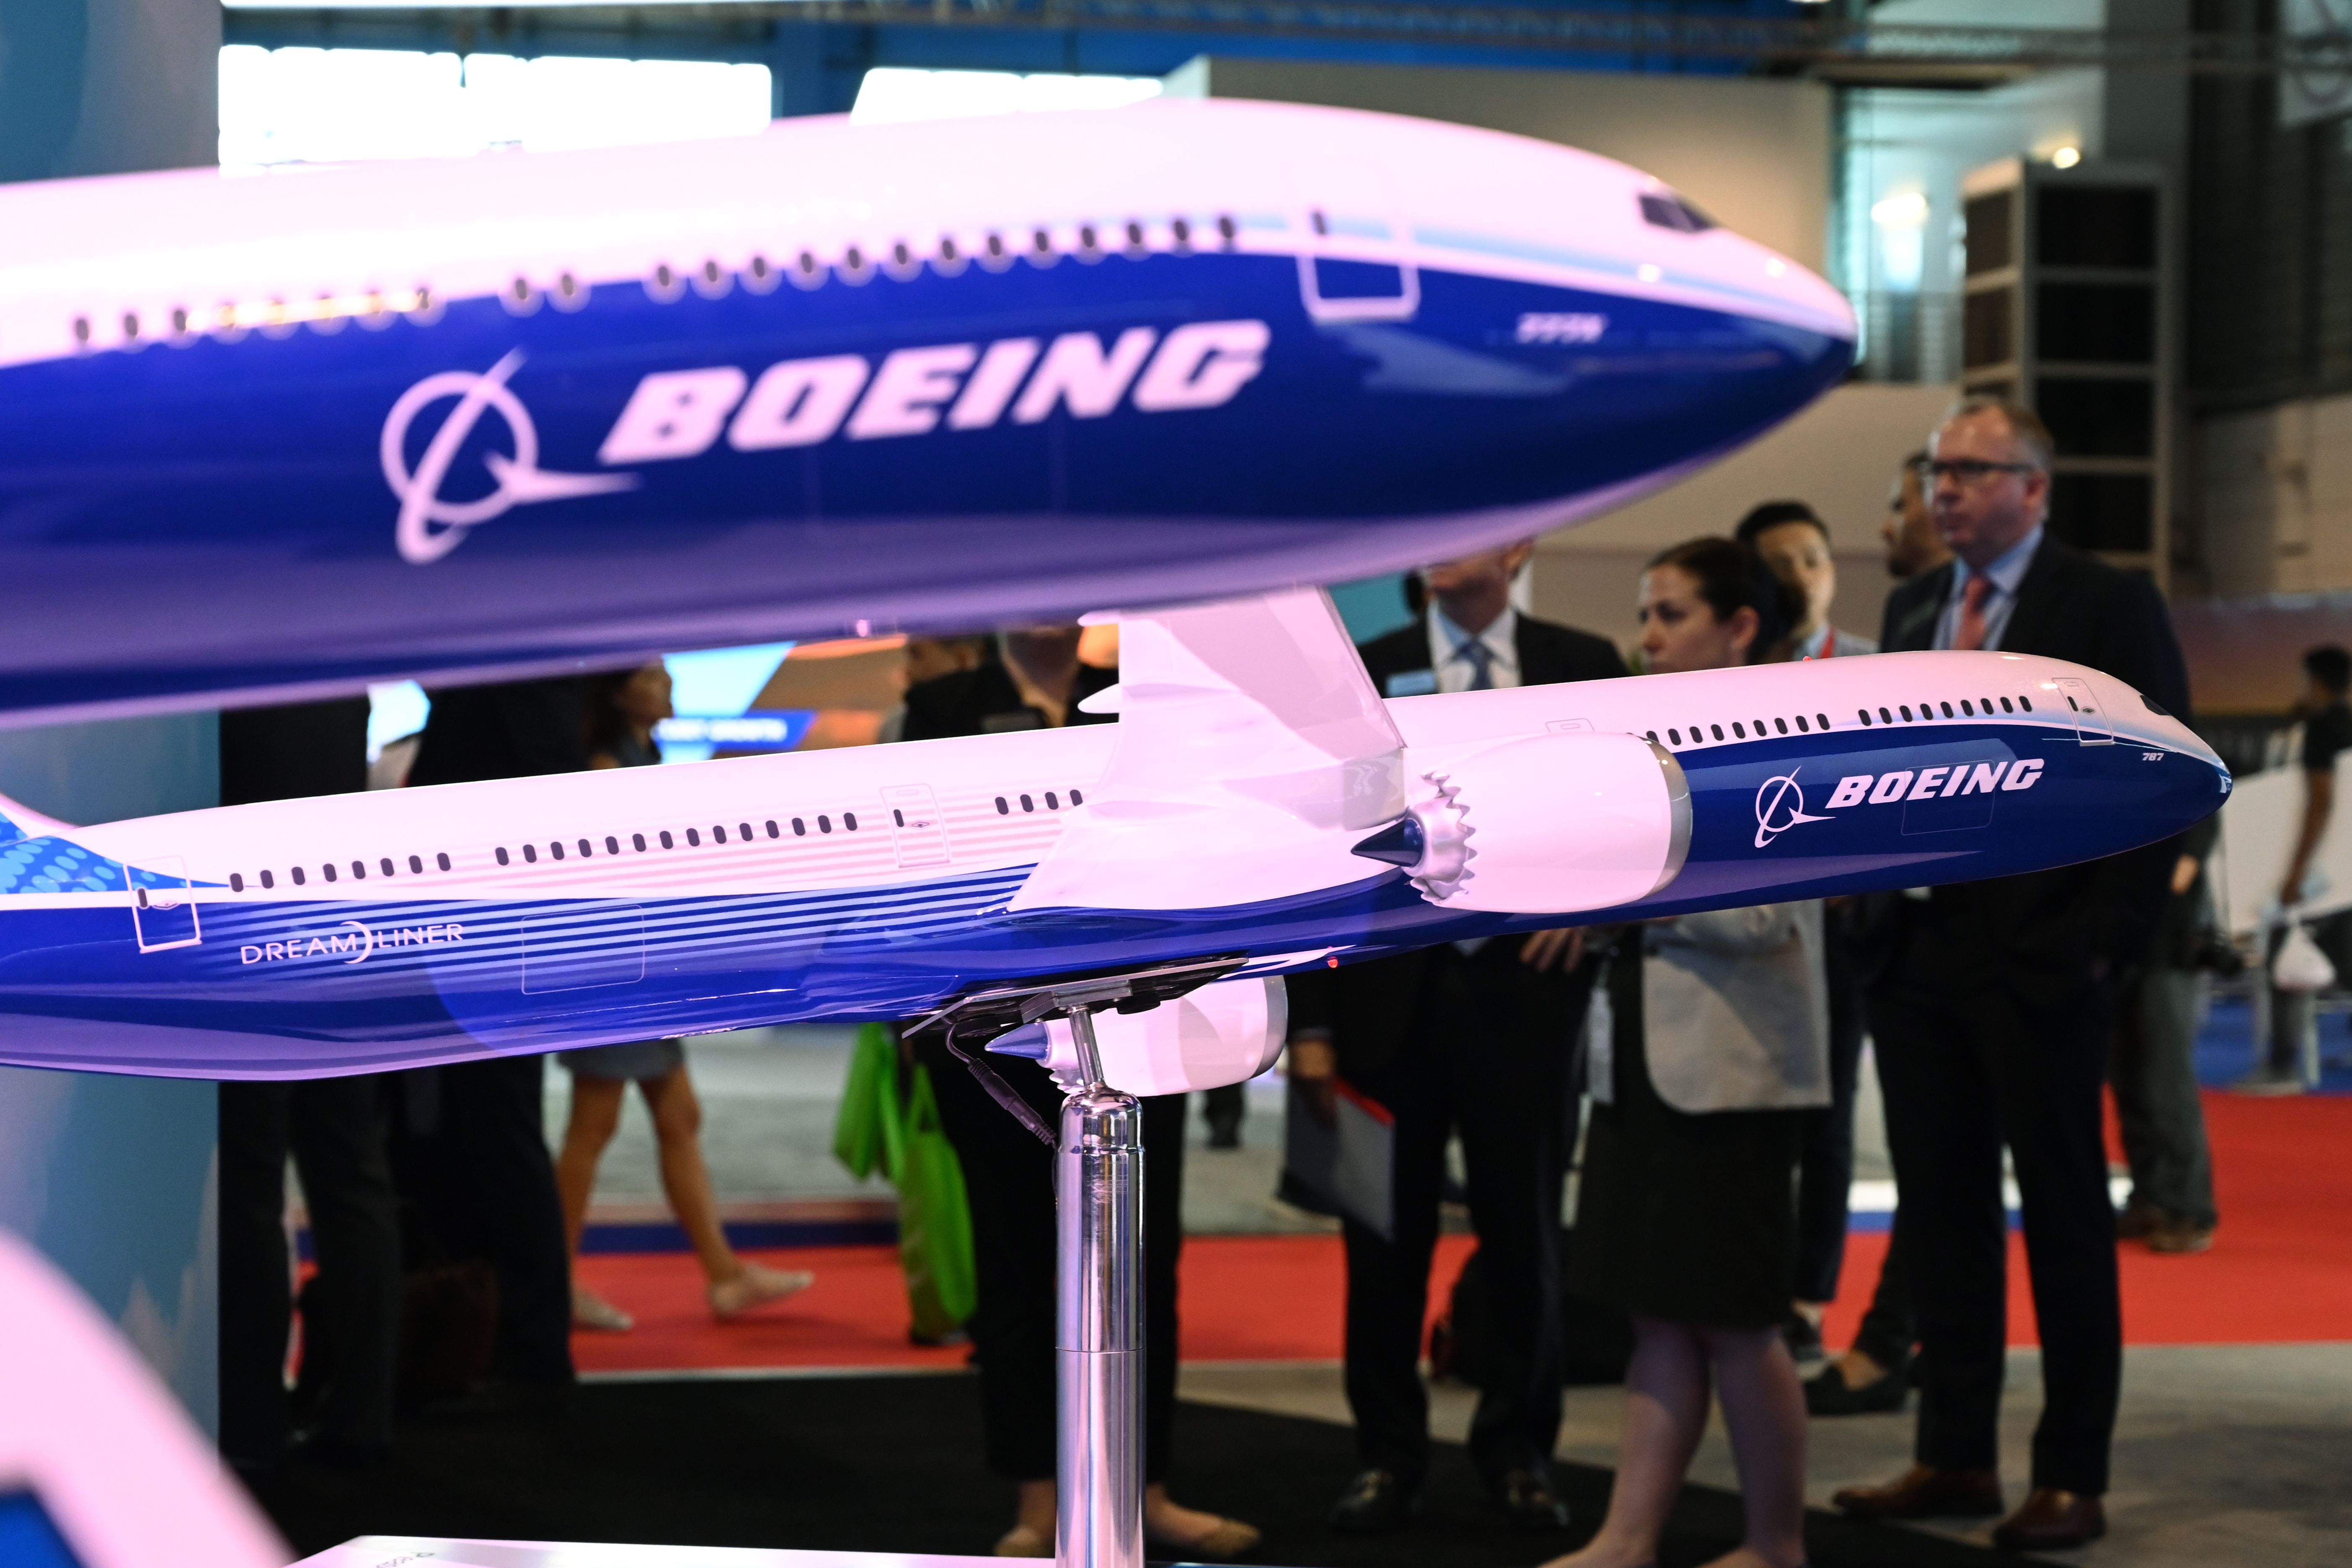 New York Fed says Boeing's production freeze could cut U.S. GDP growth by 20% in 2020 - Axios